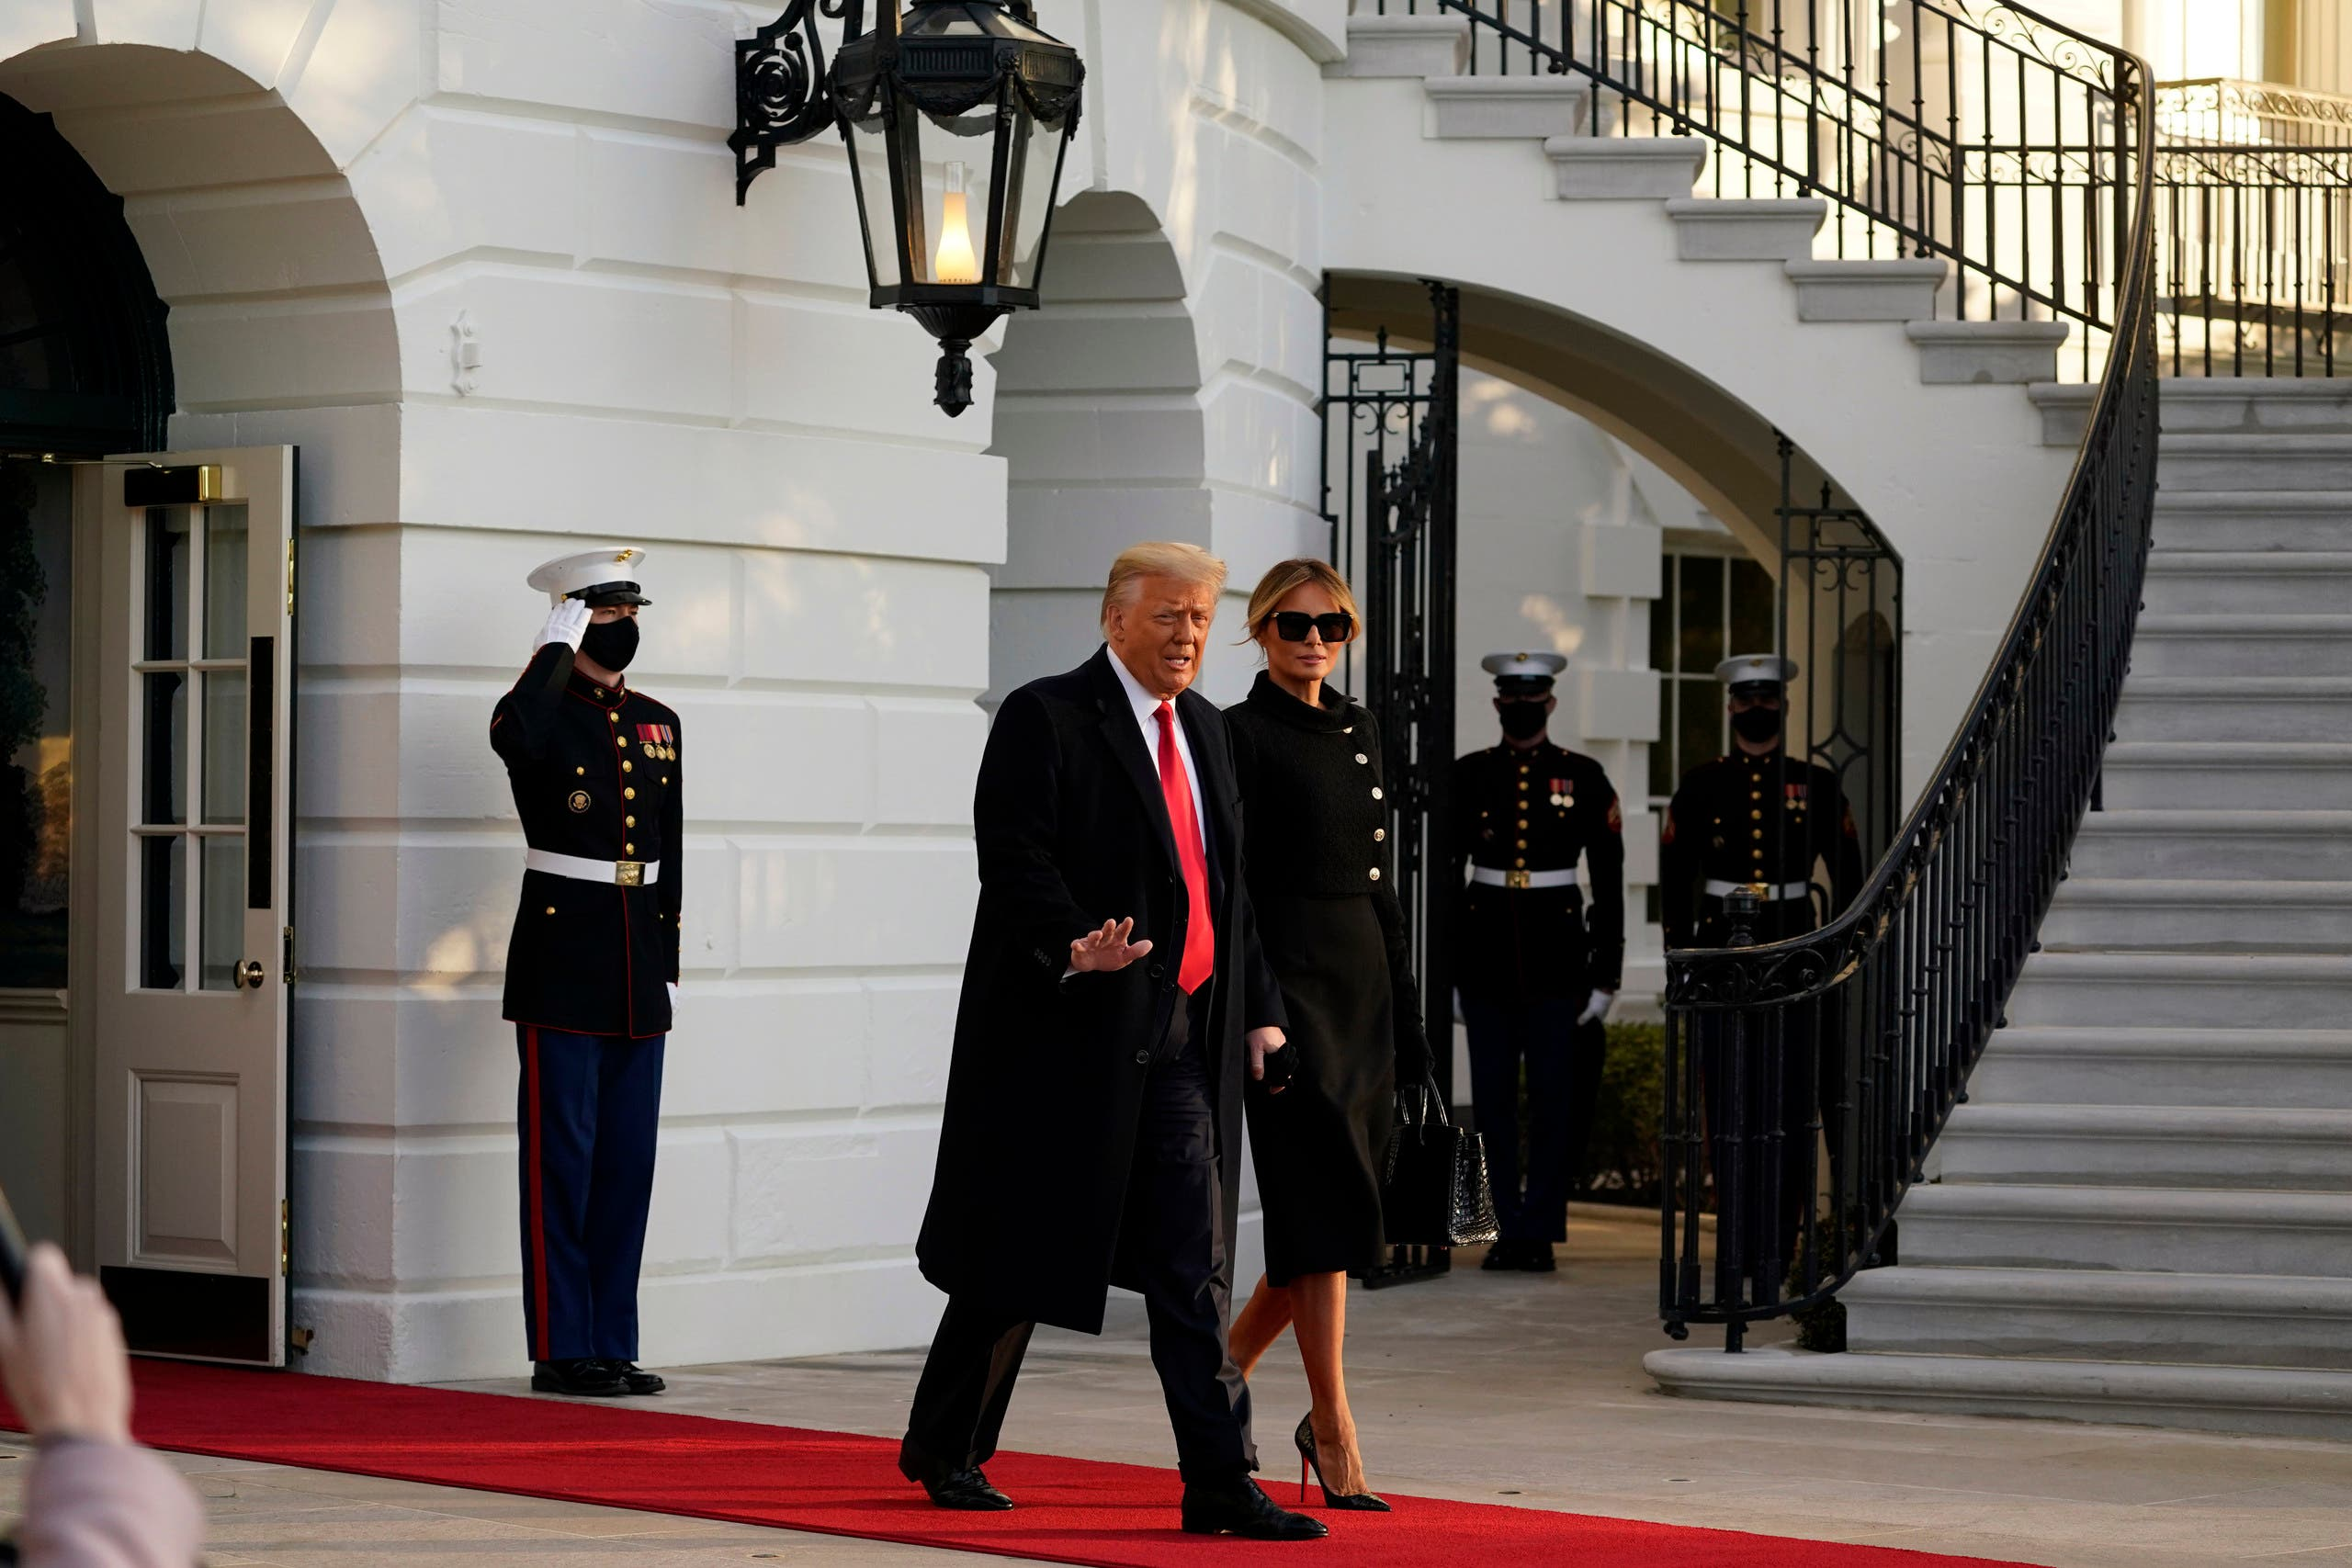 President Donald Trump and first lady Melania Trump walk to board Marine One on the South Lawn of the White House, Wednesday, Jan. 20, 2021, in Washington. (File photo: AP)